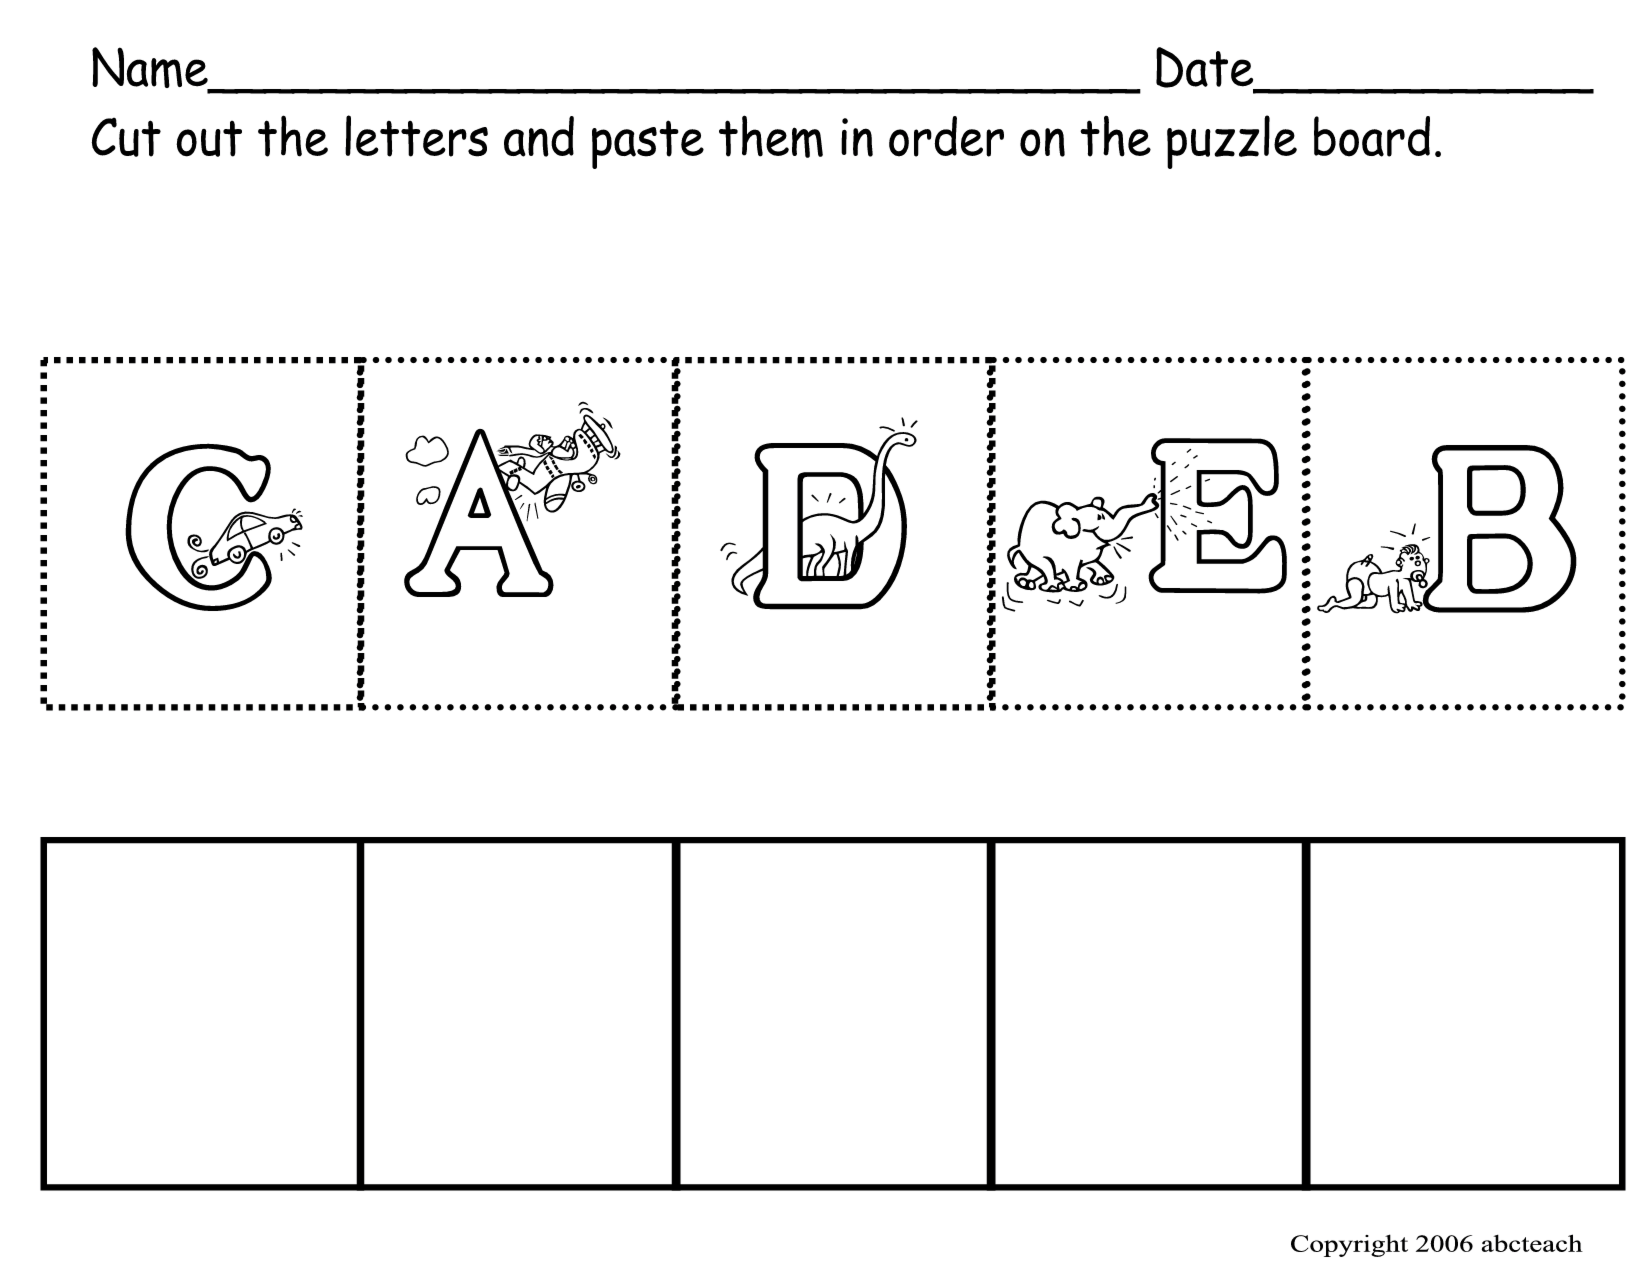 Worksheets Abc Worksheets For Pre-k preschool abc worksheets kiduls printable letters printable